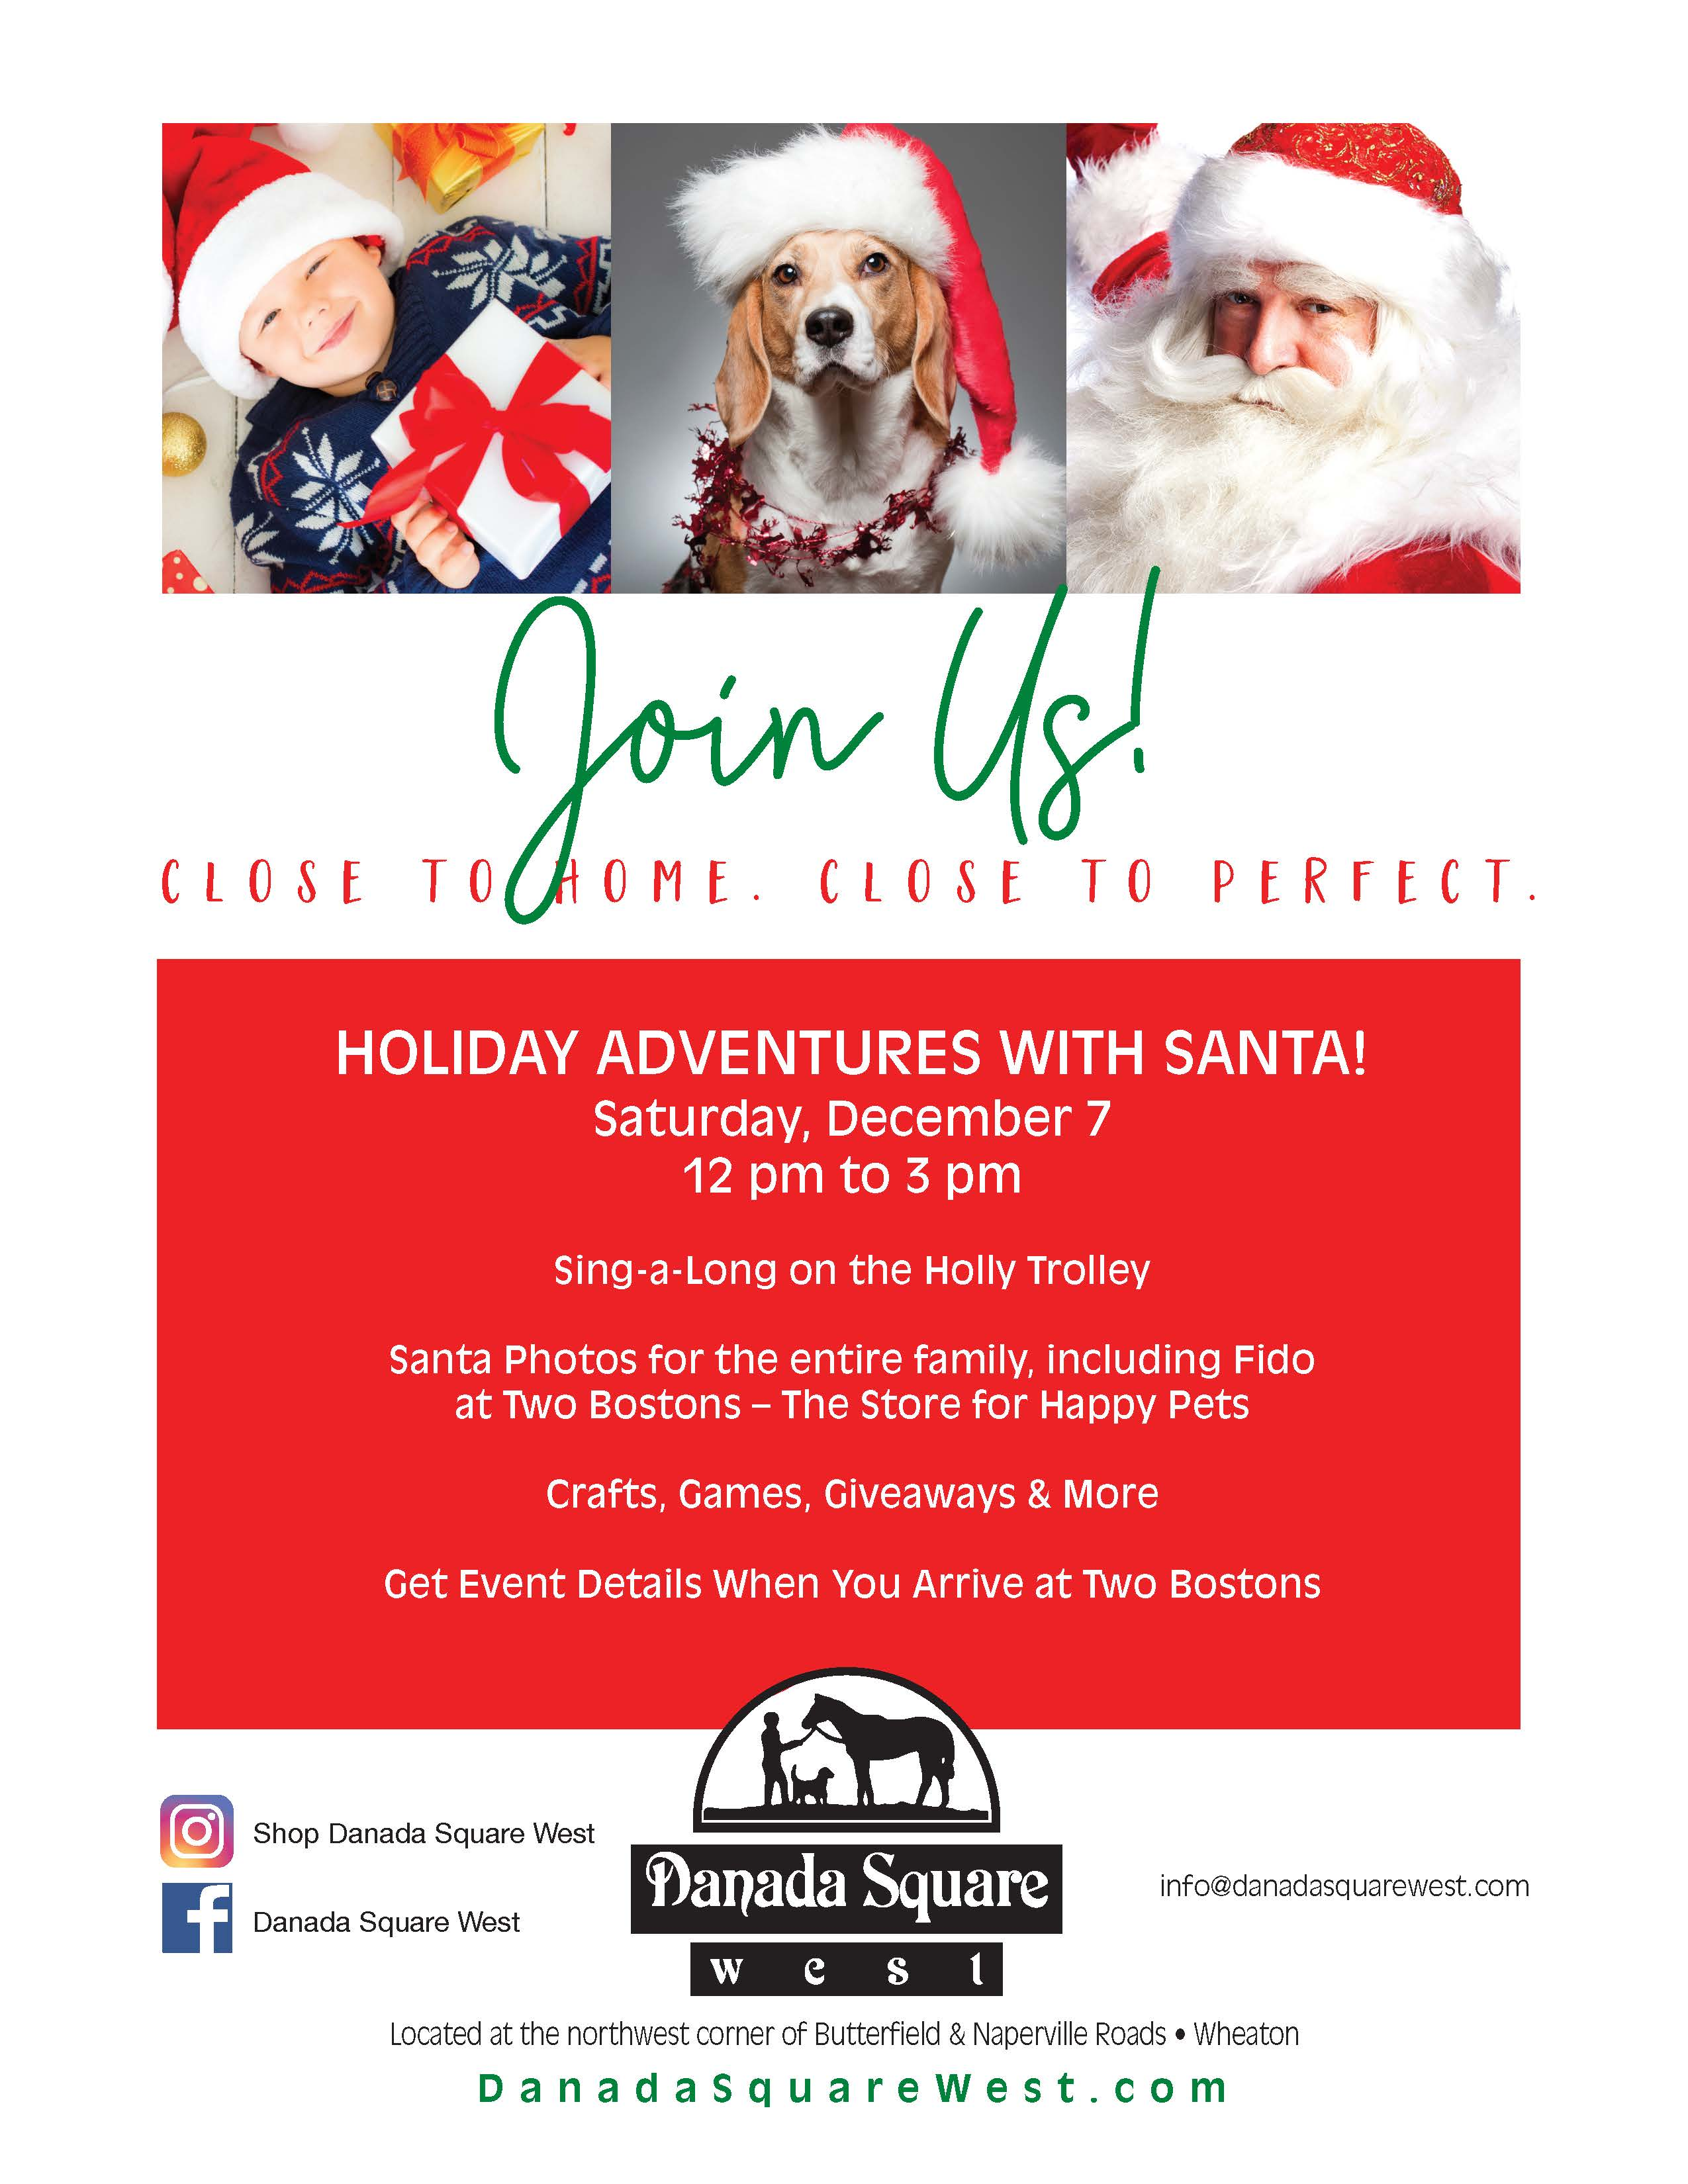 Holiday Adventures with Santa on Saturday December 7 from 12-3PM. Sing-a-long, photos, crafts, ganes abd nire